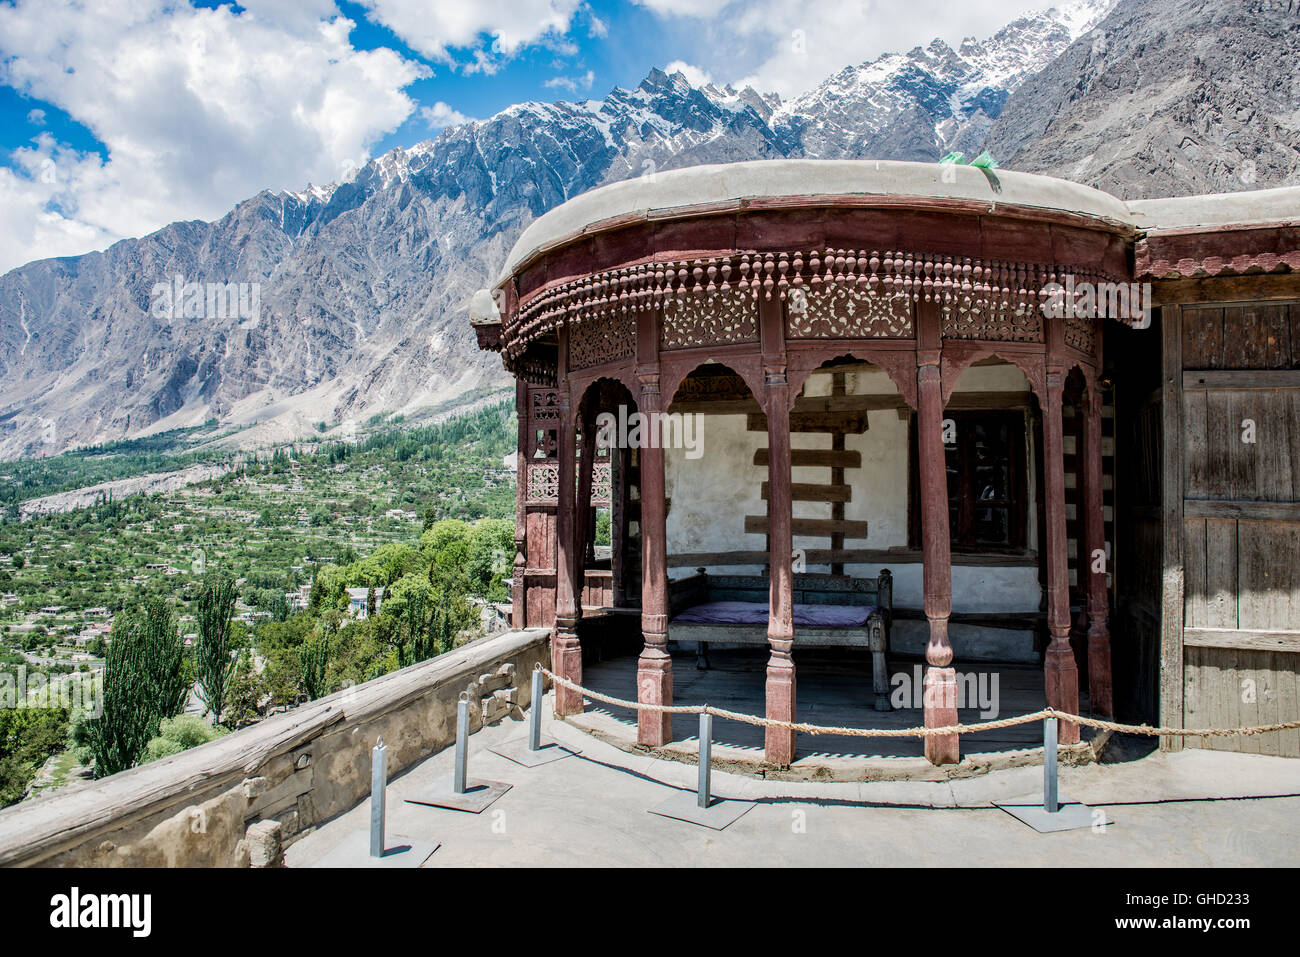 Baltit fort in Karimabad, Pakistan with a view of the Hunza valley - Stock Image